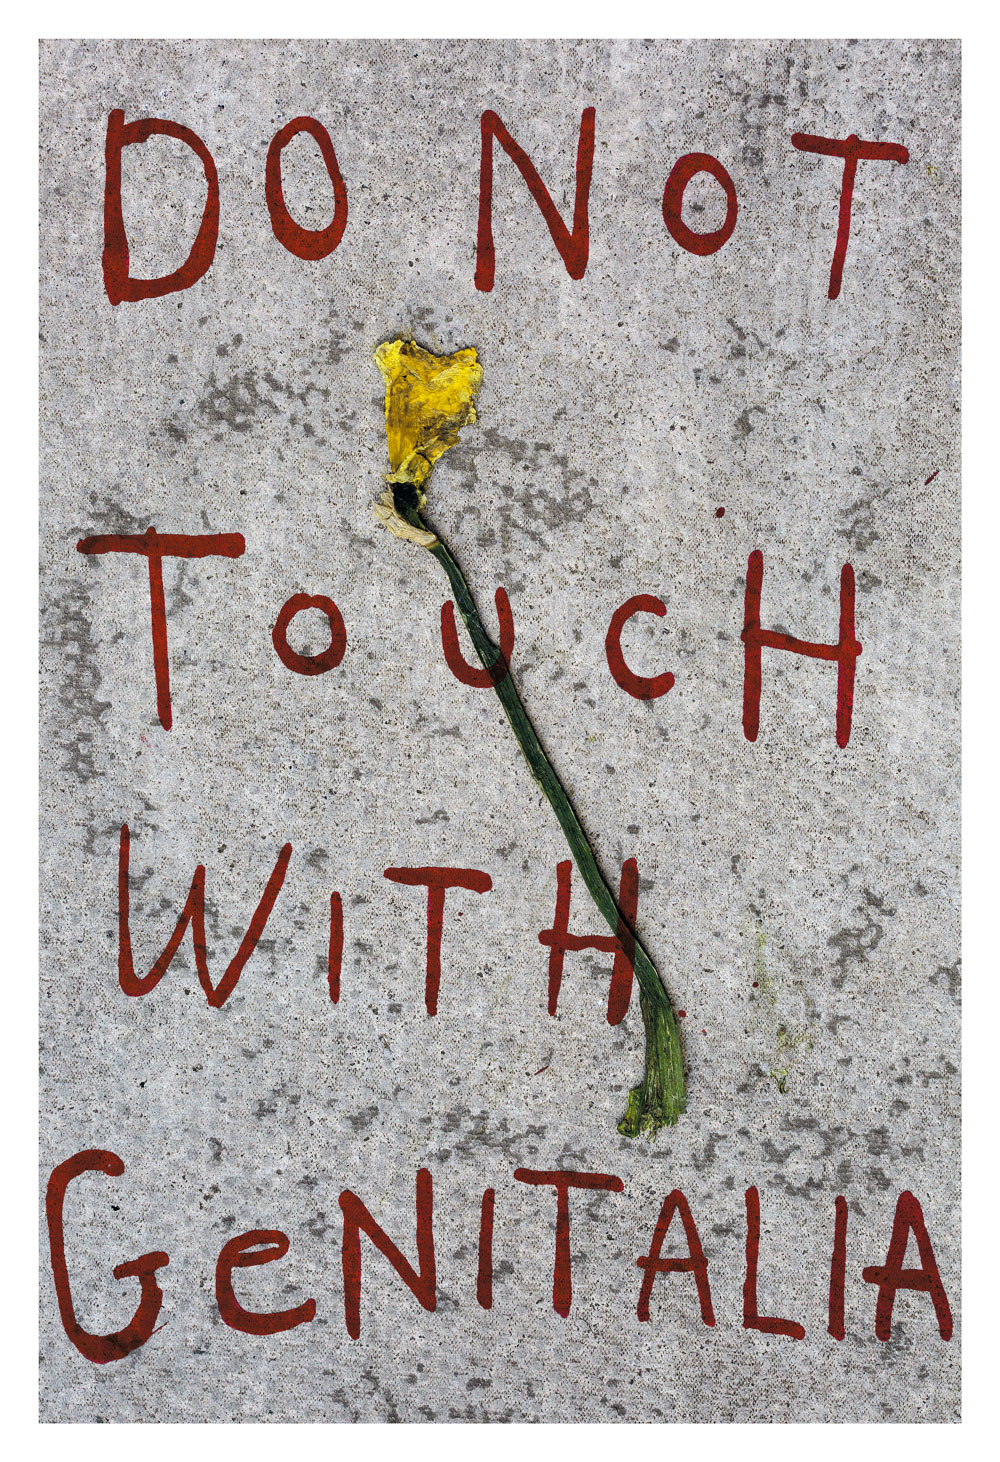 Melissa Spiccia | SEE FLOWERS IN HEL DO NOT TOUCH WITH GENITALIA DAFF MELISSA SPICCIA